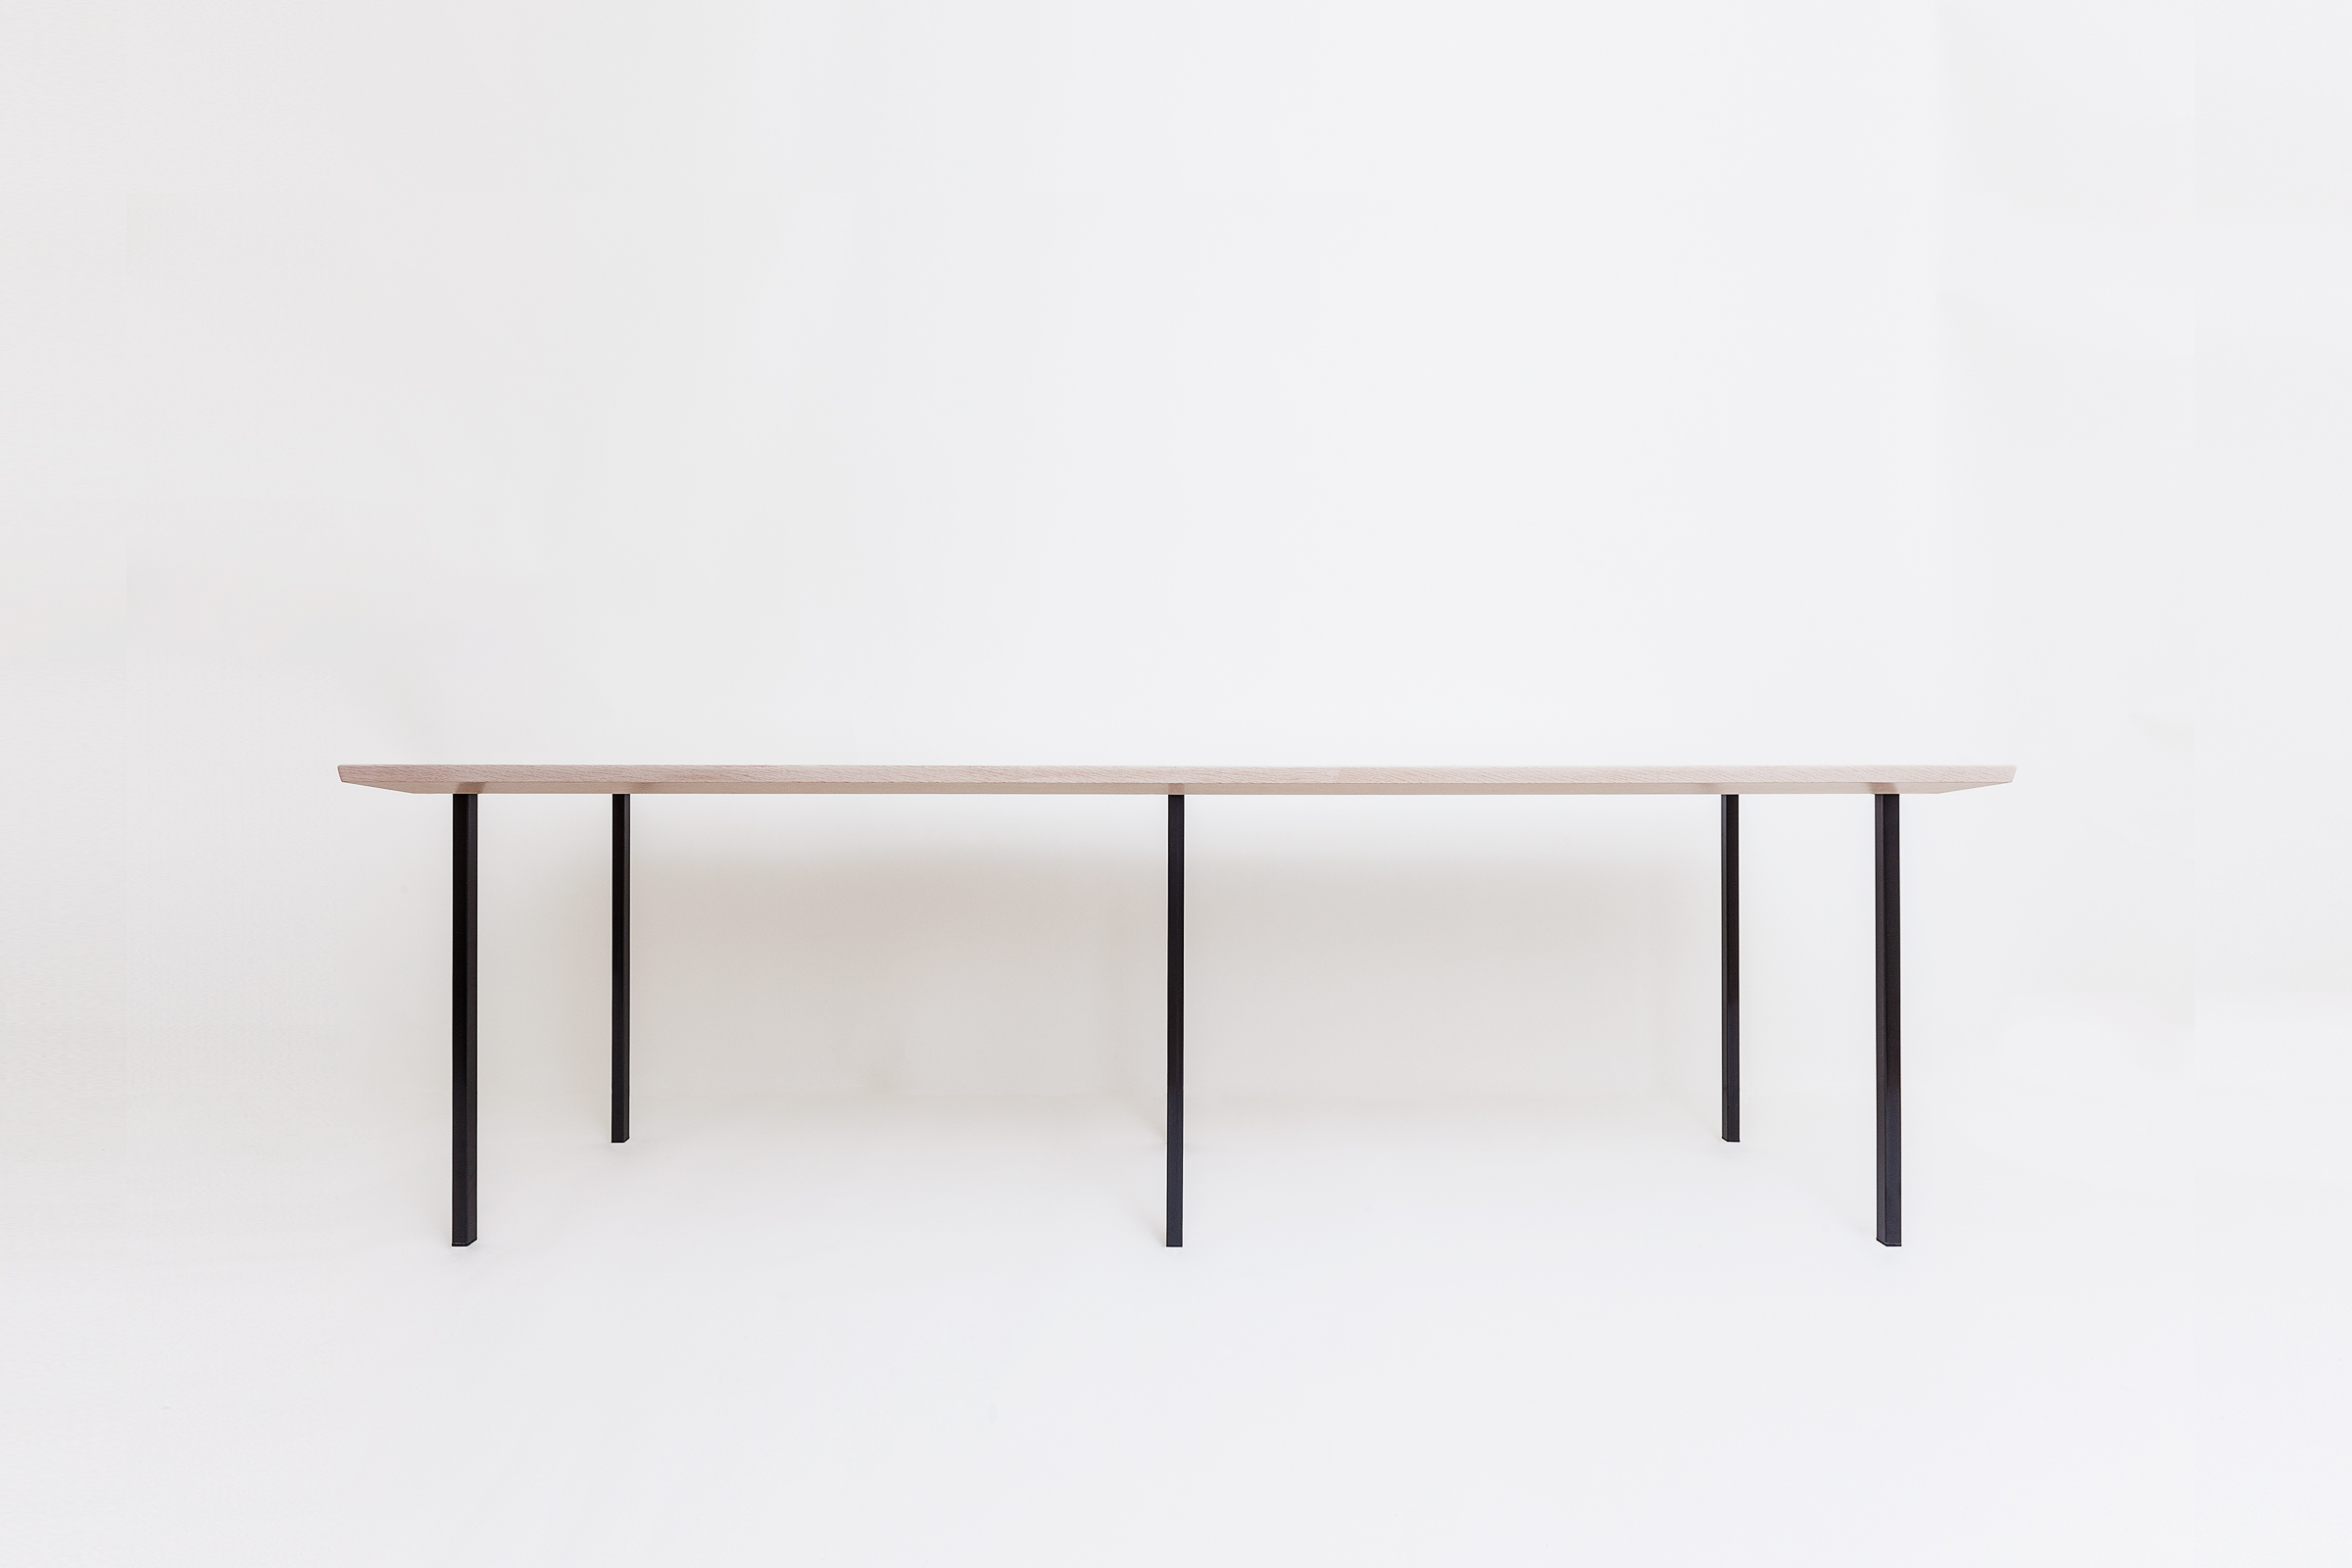 Long Table. Front view